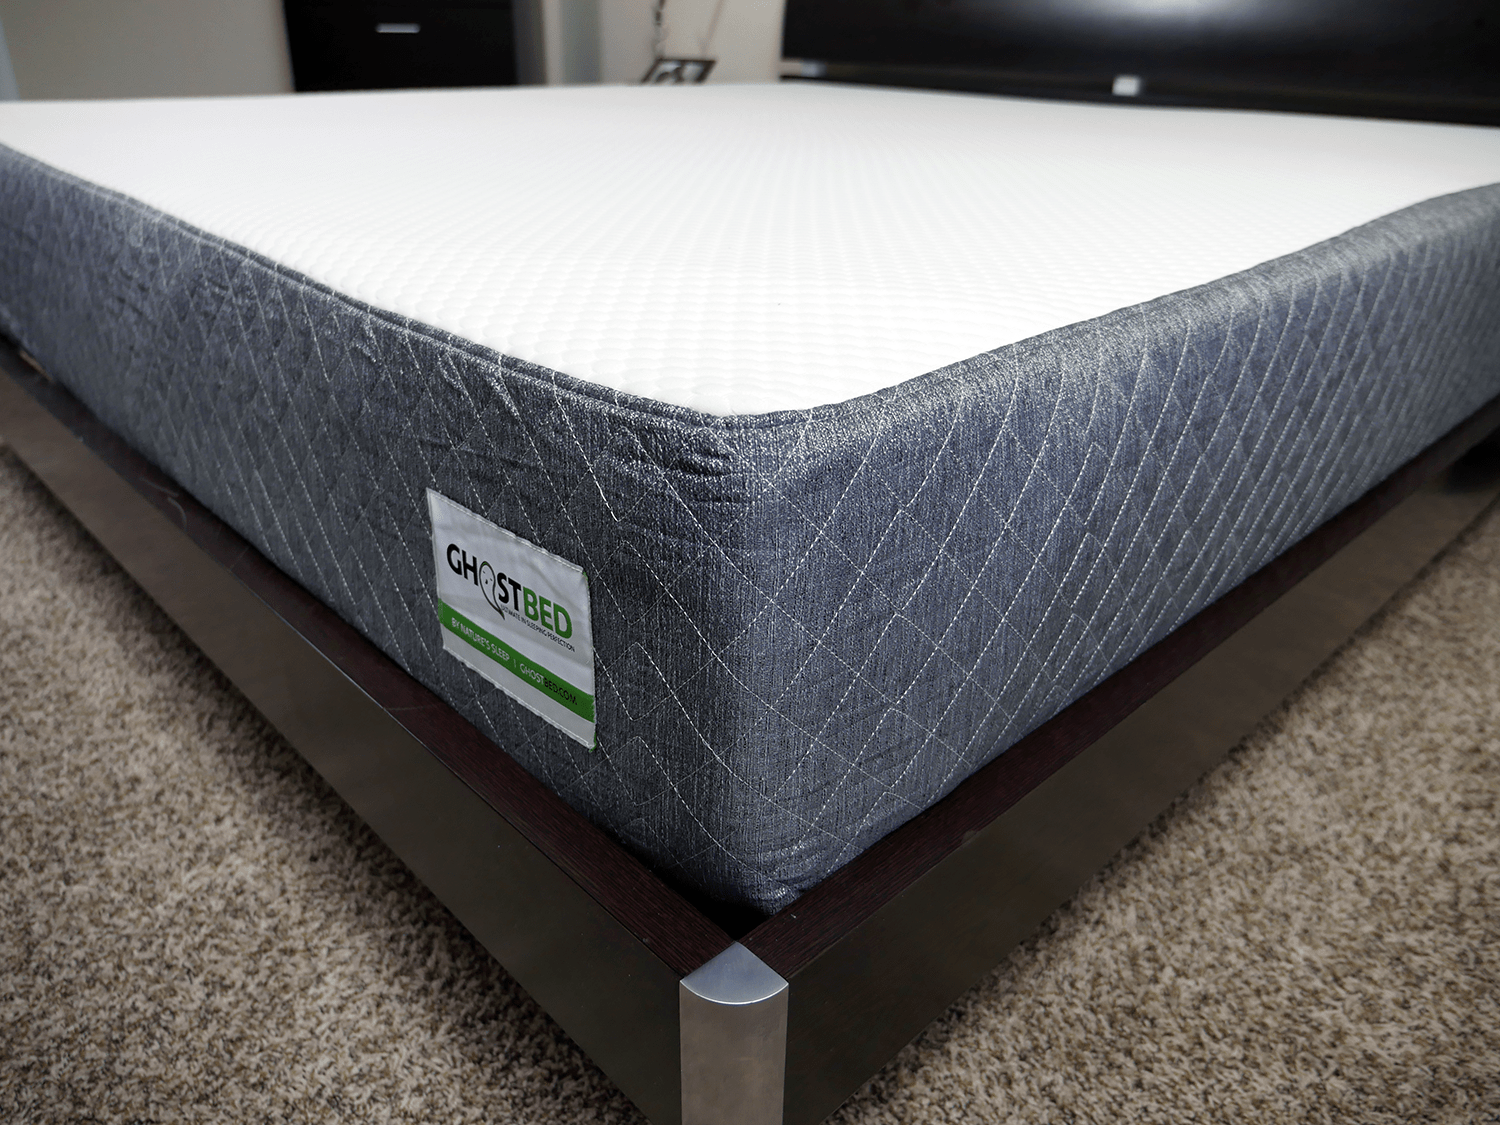 Close up shot of the GhostBed mattress cover